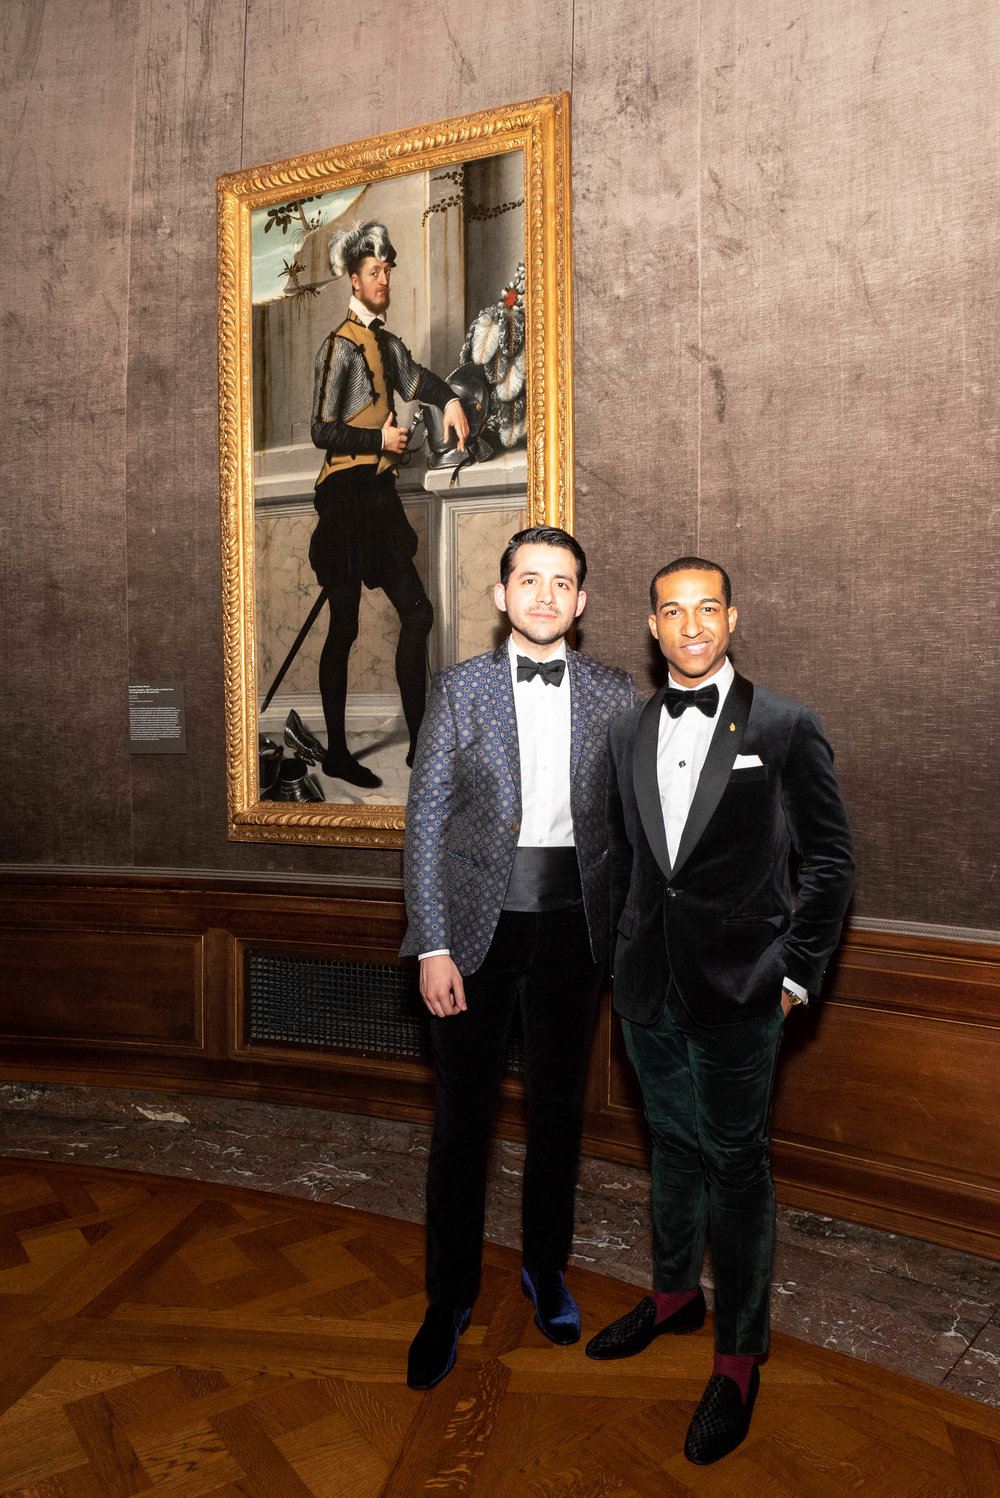 Andrea Perea-Garzon and Tes Kendrick attend The Frick Collection's 20th Annual Young Fellows Ball at 1 East 70th Street on Thursday, March 21st, 2019. Photography, Courtesy of The Frick Collection.